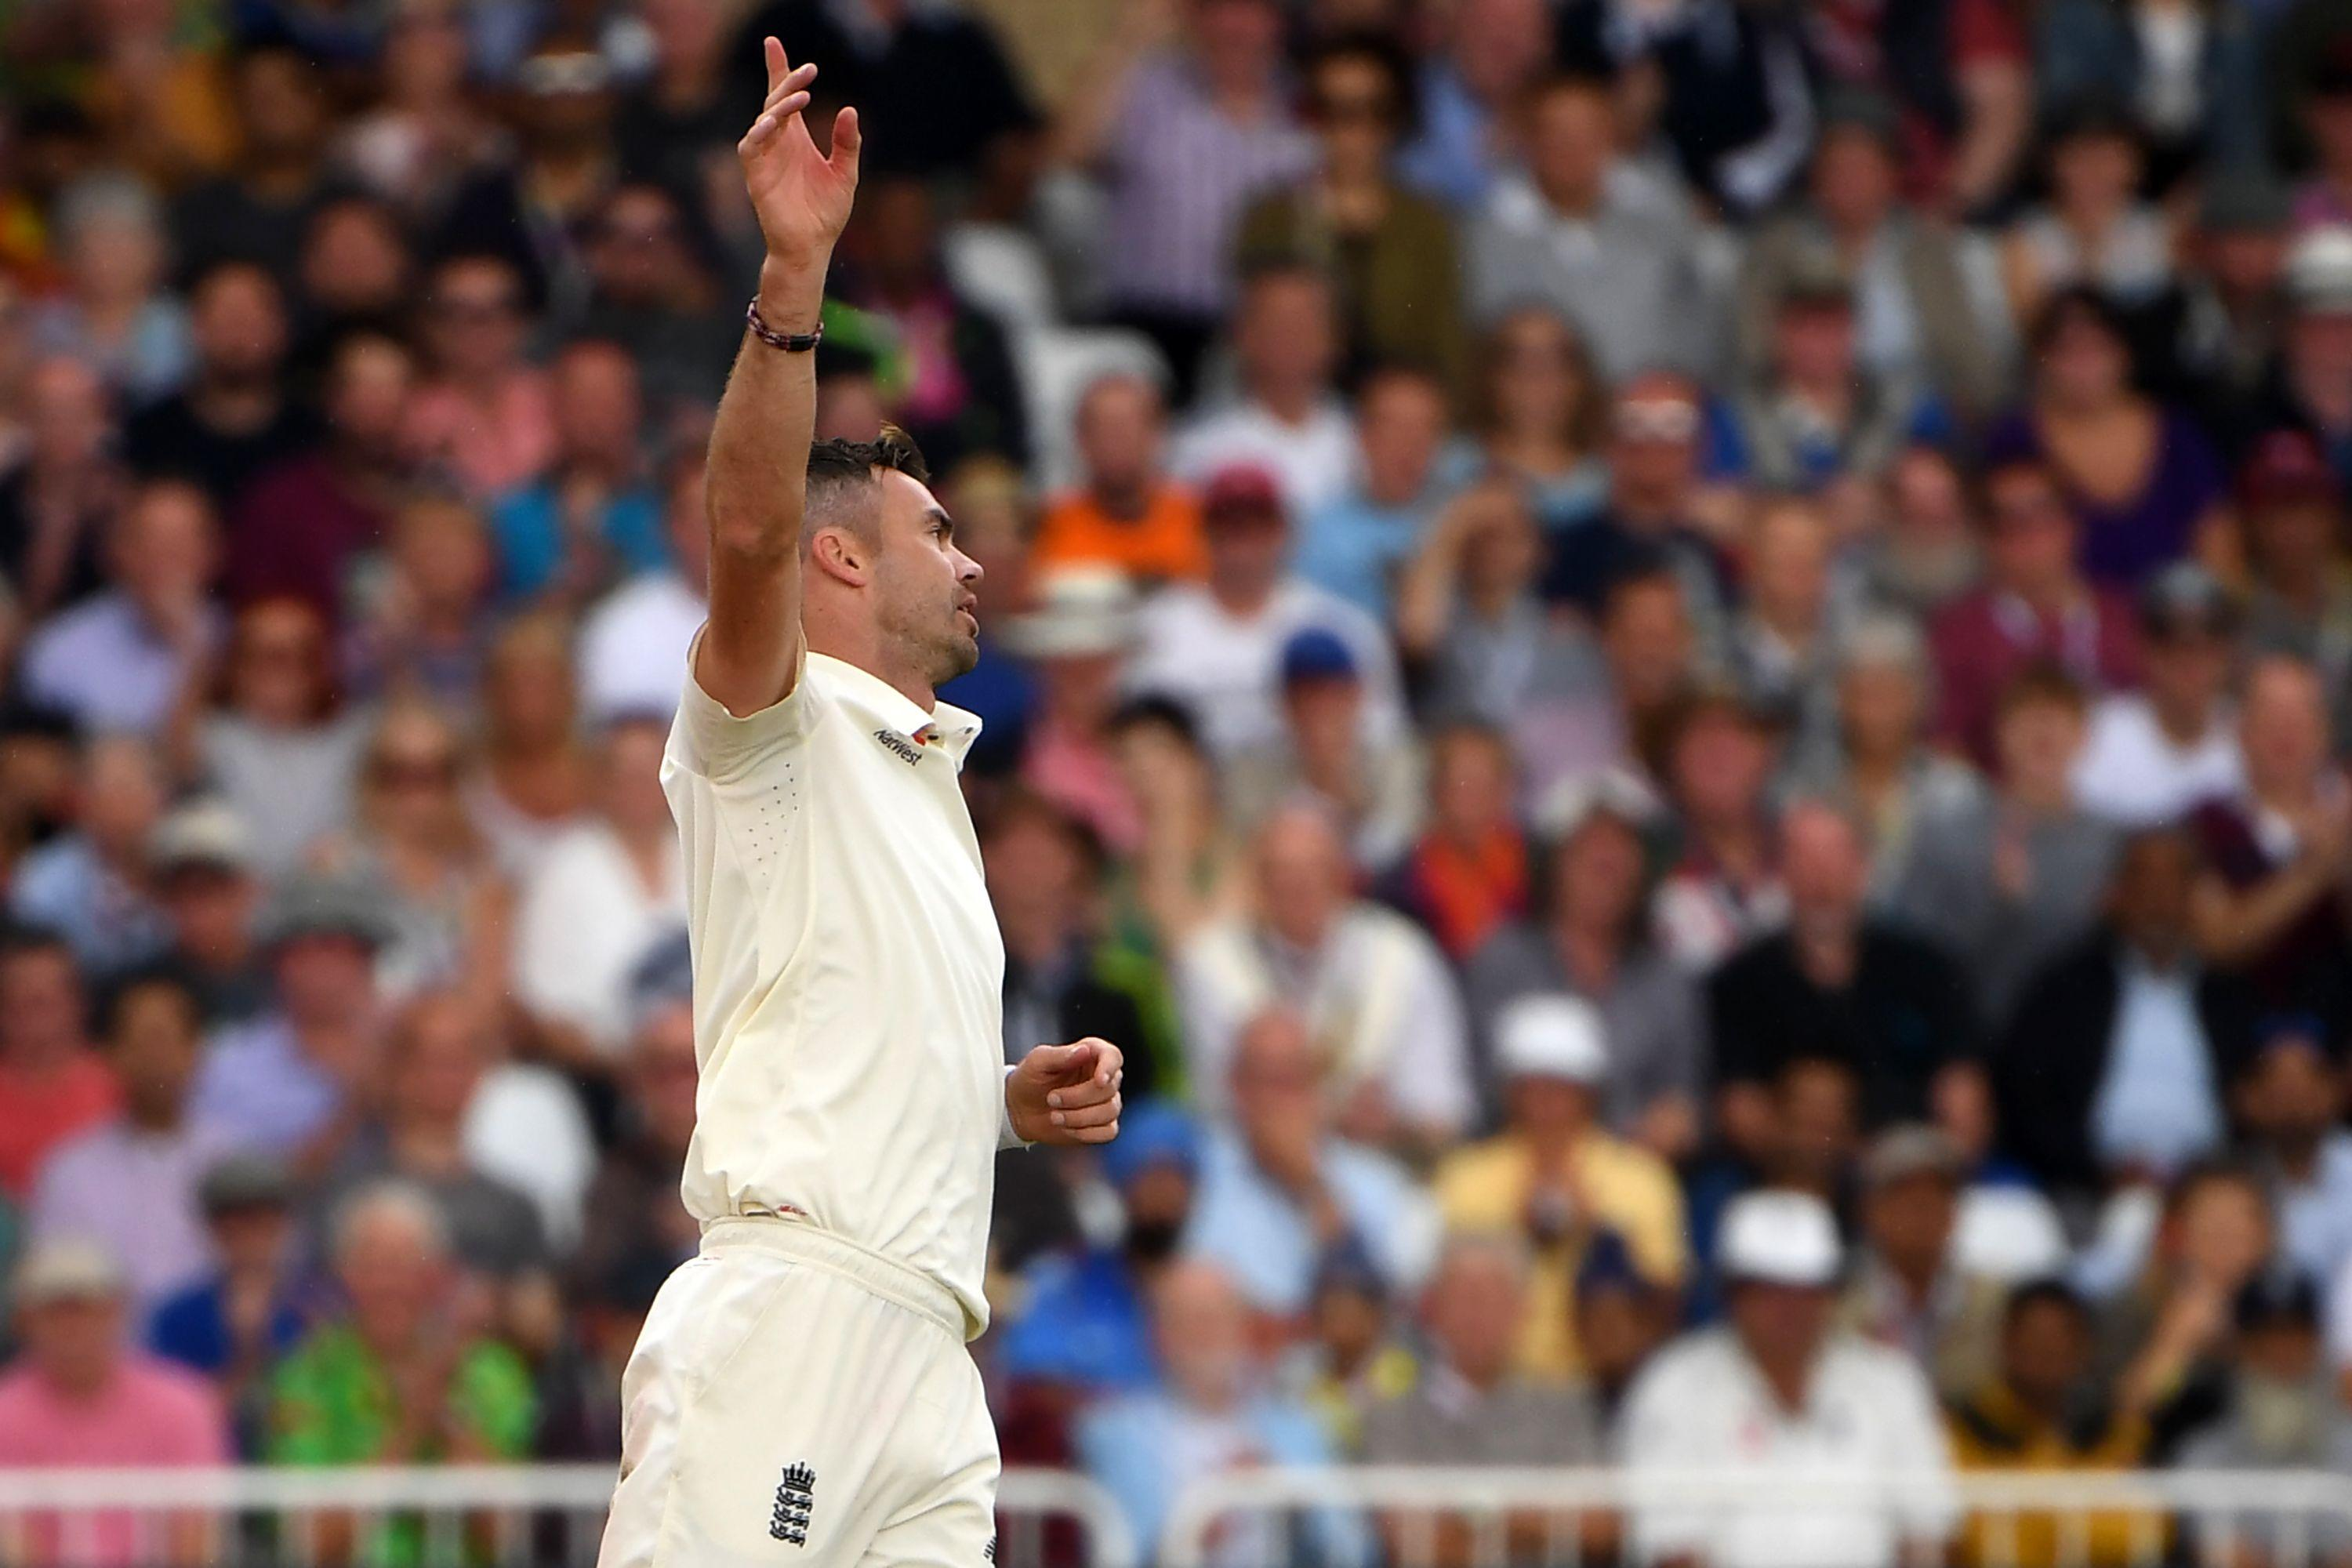 James Anderson began India's second innings on a hat-trick after taking the last two wickets earlier on in successive deliveries